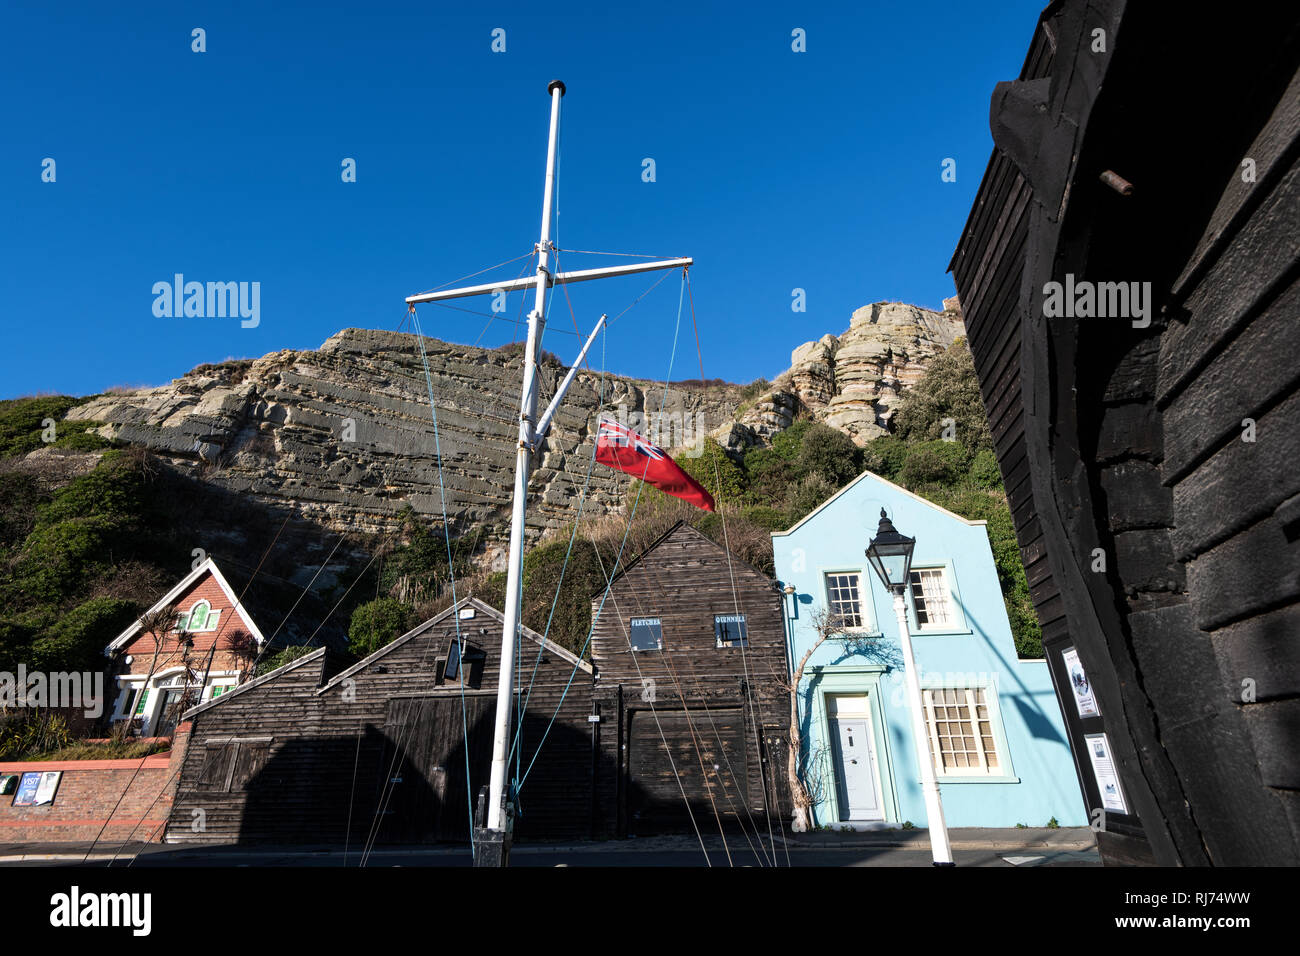 Hastings Open Air Fisherman's Museum, East Sussex, England - Stock Image